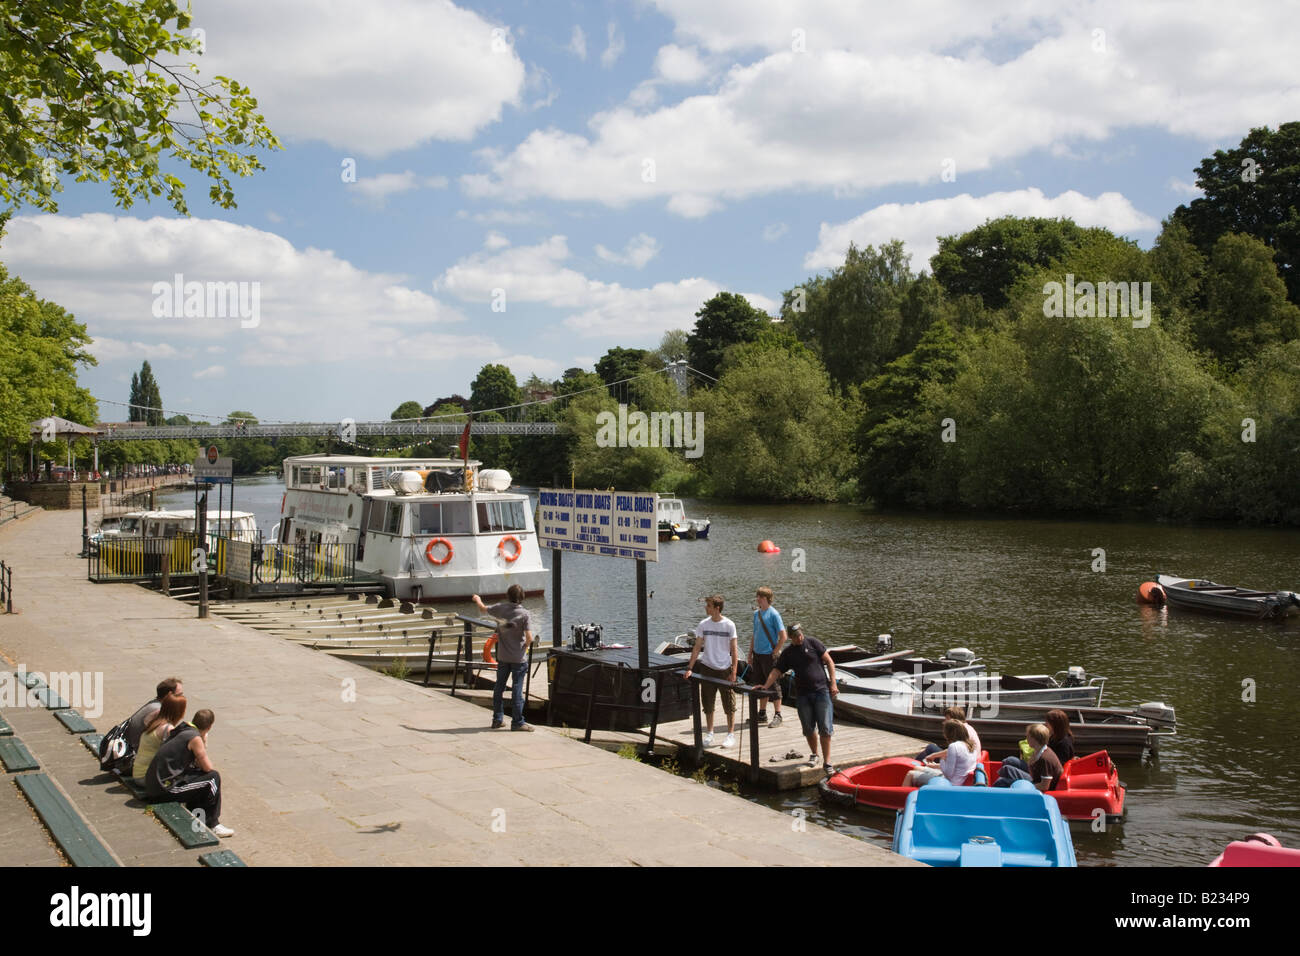 Showboat on River Dee with hire boats and people on riverbank in summer. Chester Cheshire England UK Stock Photo